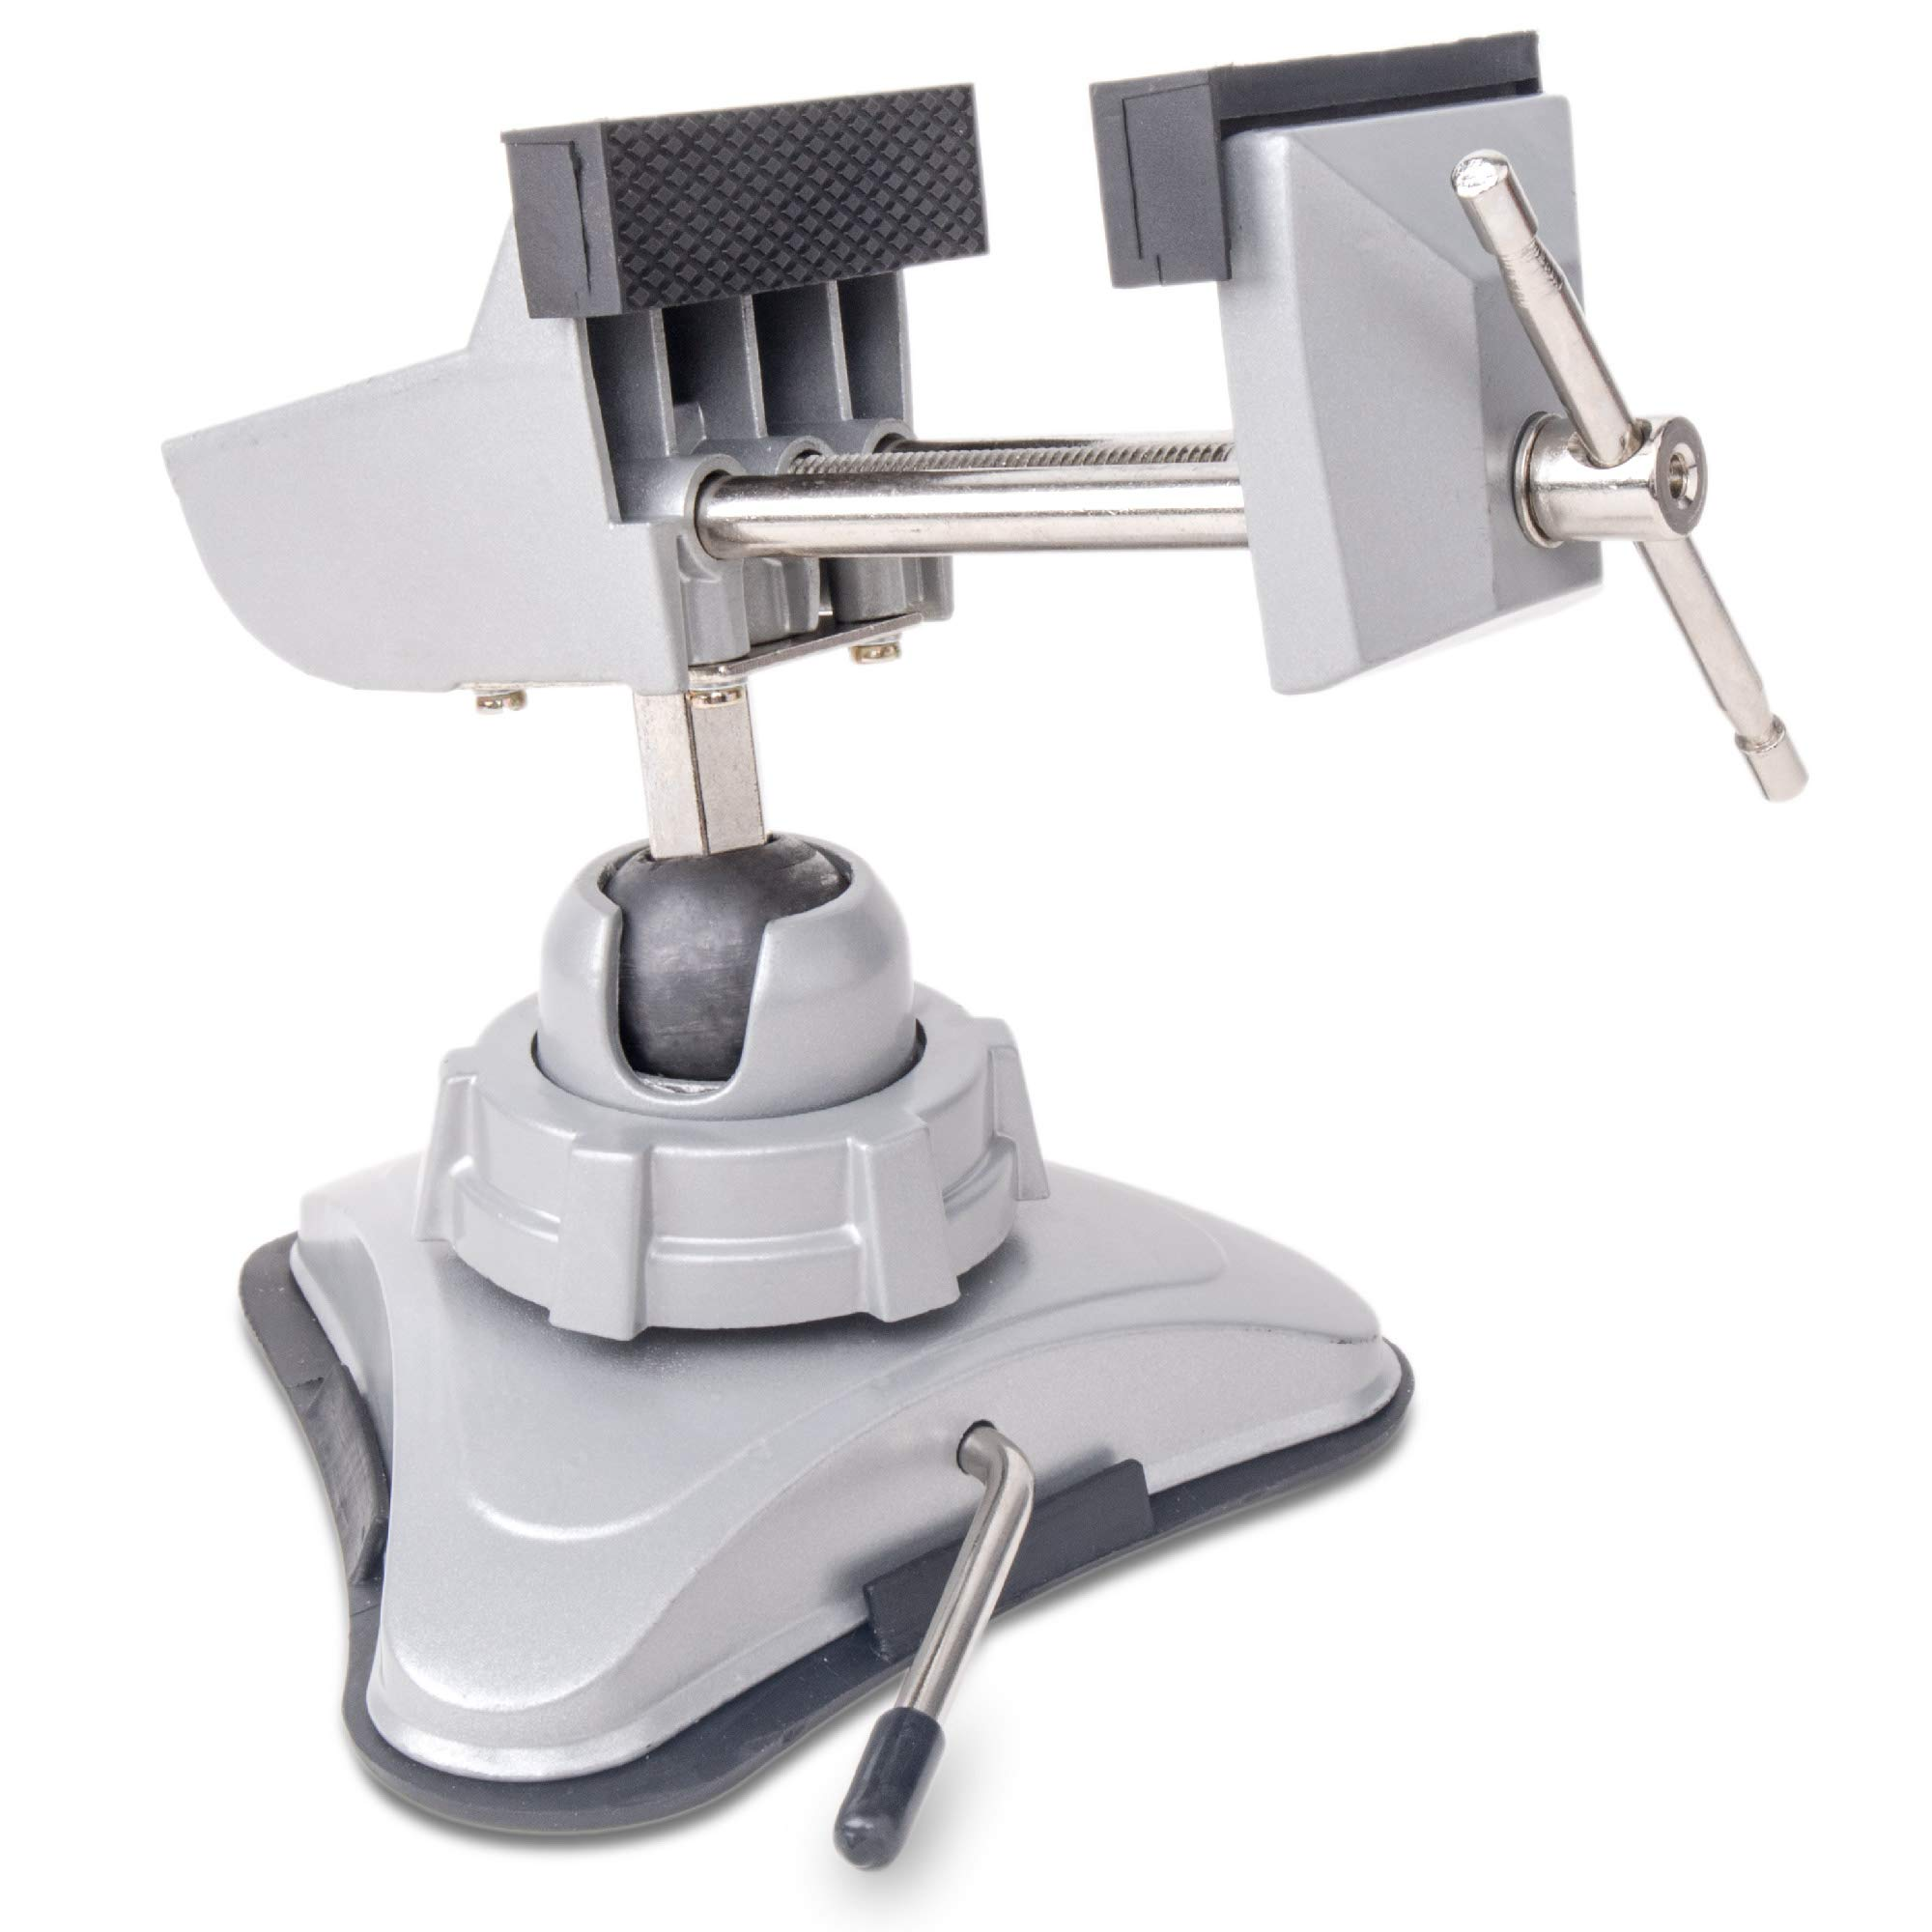 Hi-Spec Hobby Mini Vise with 360° Swiveling Head and Powerful Suction Mounting Mechanism and Soft Jaws for Craft, Model Building, Electronics, Jewelry Making and Metal Work Multi-Angle Table Vise by Hi-Spec